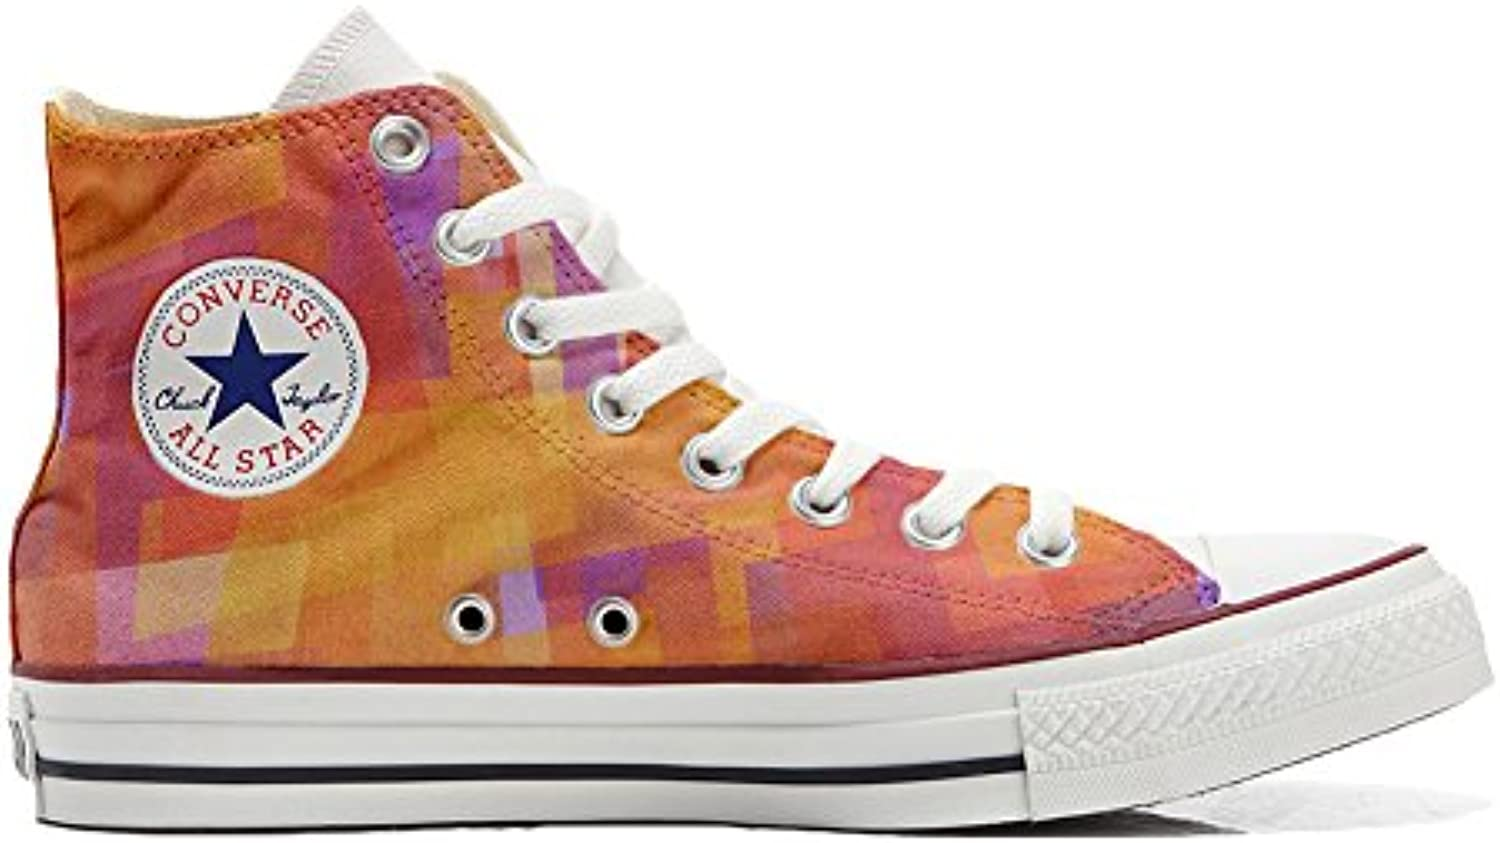 Converse All Star Zapatos Personalizados (Producto Handmade) (Producto Handmade) Abstract Size 38 EU